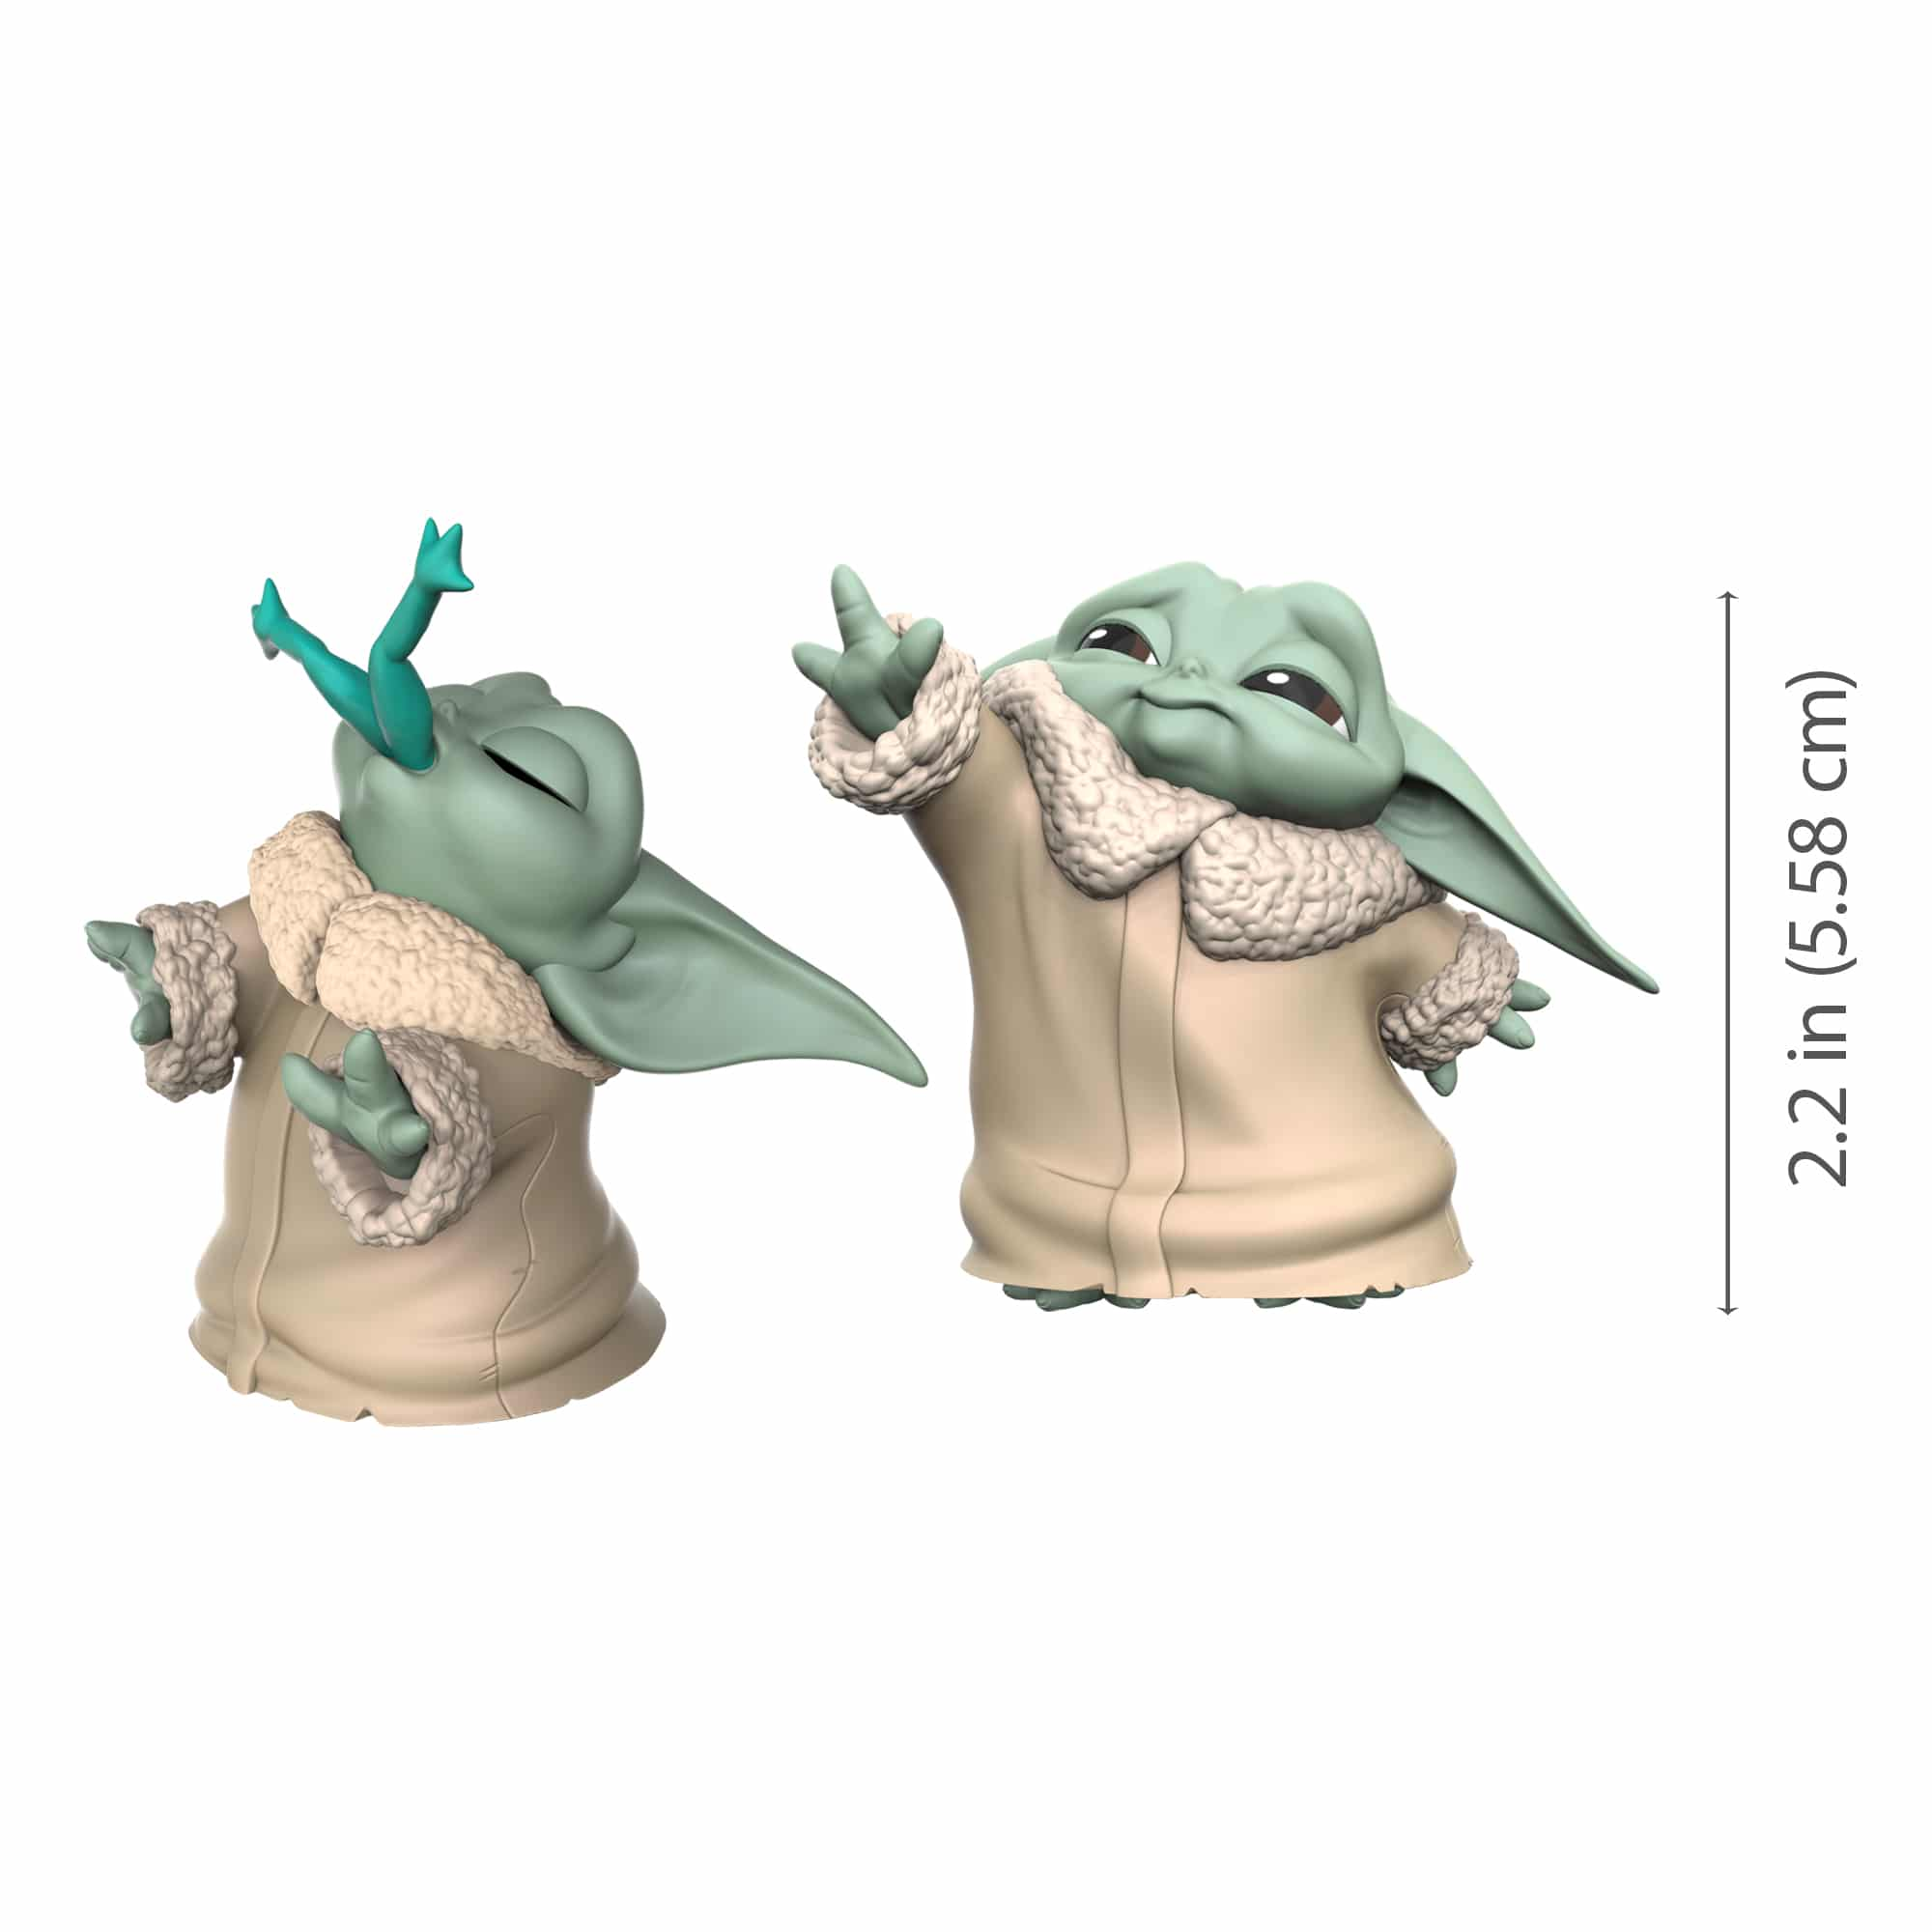 Hasbro's first Baby Yoda toys are here and they're freaking adorable 15